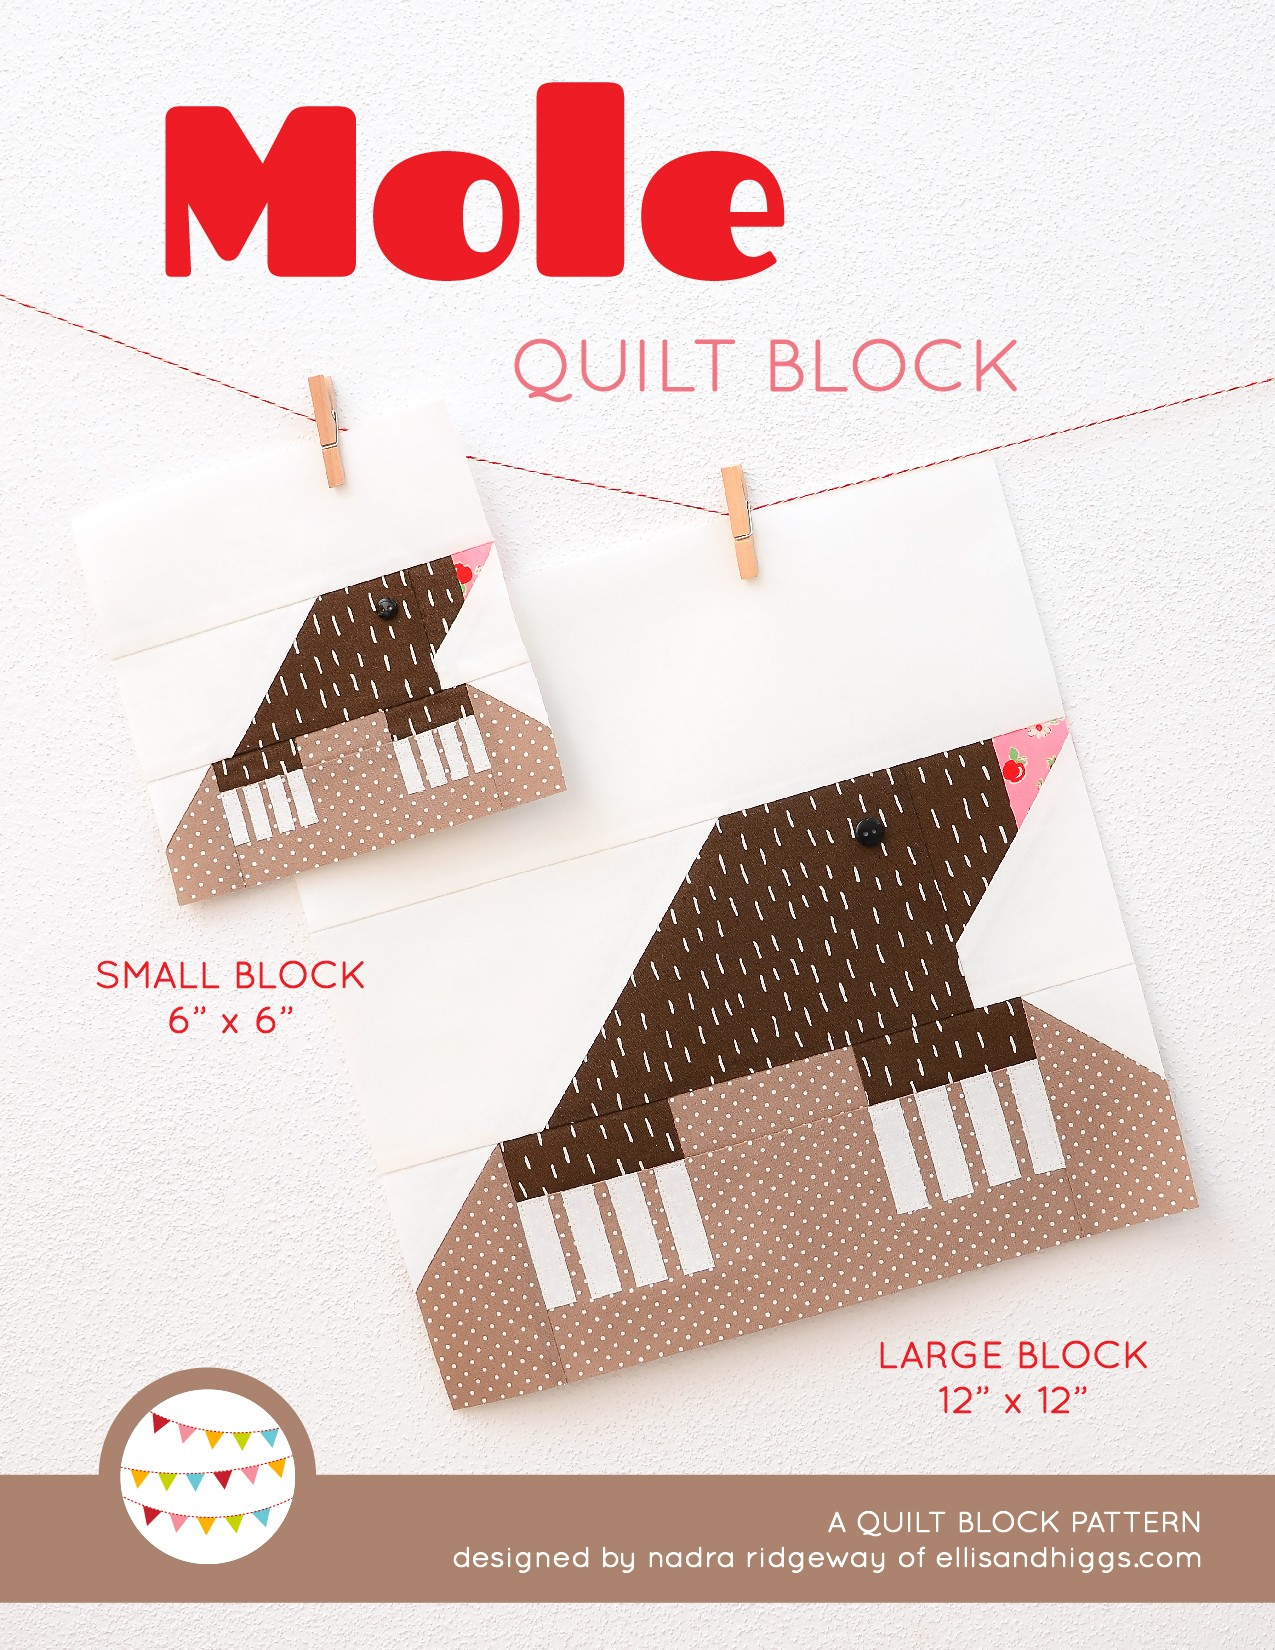 Mole quilt blocks